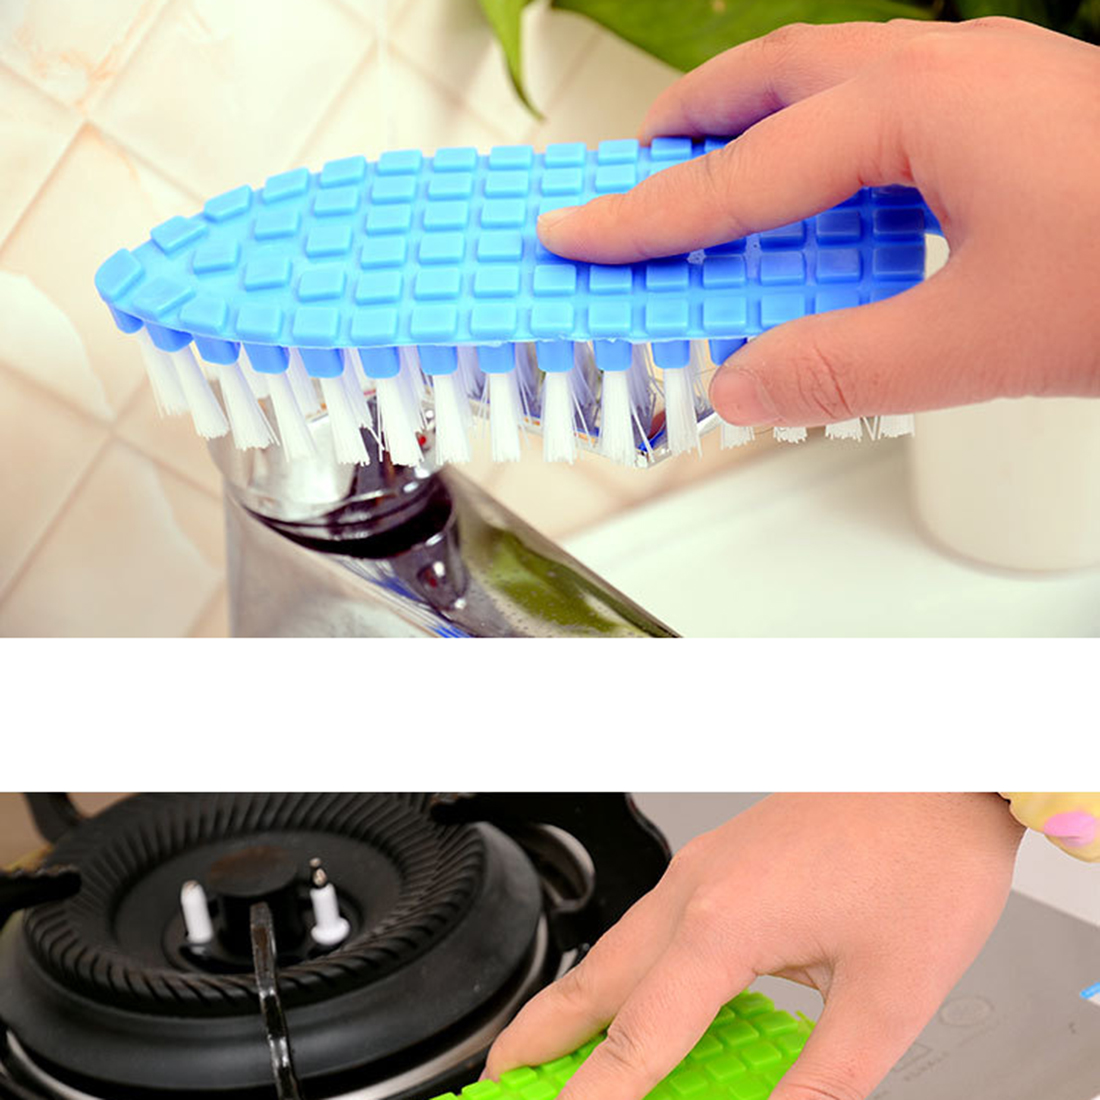 Magic High Quality Flexible Household Washing Tools Cleaning Brusher For The Kitchen Tile Floor Bathroom